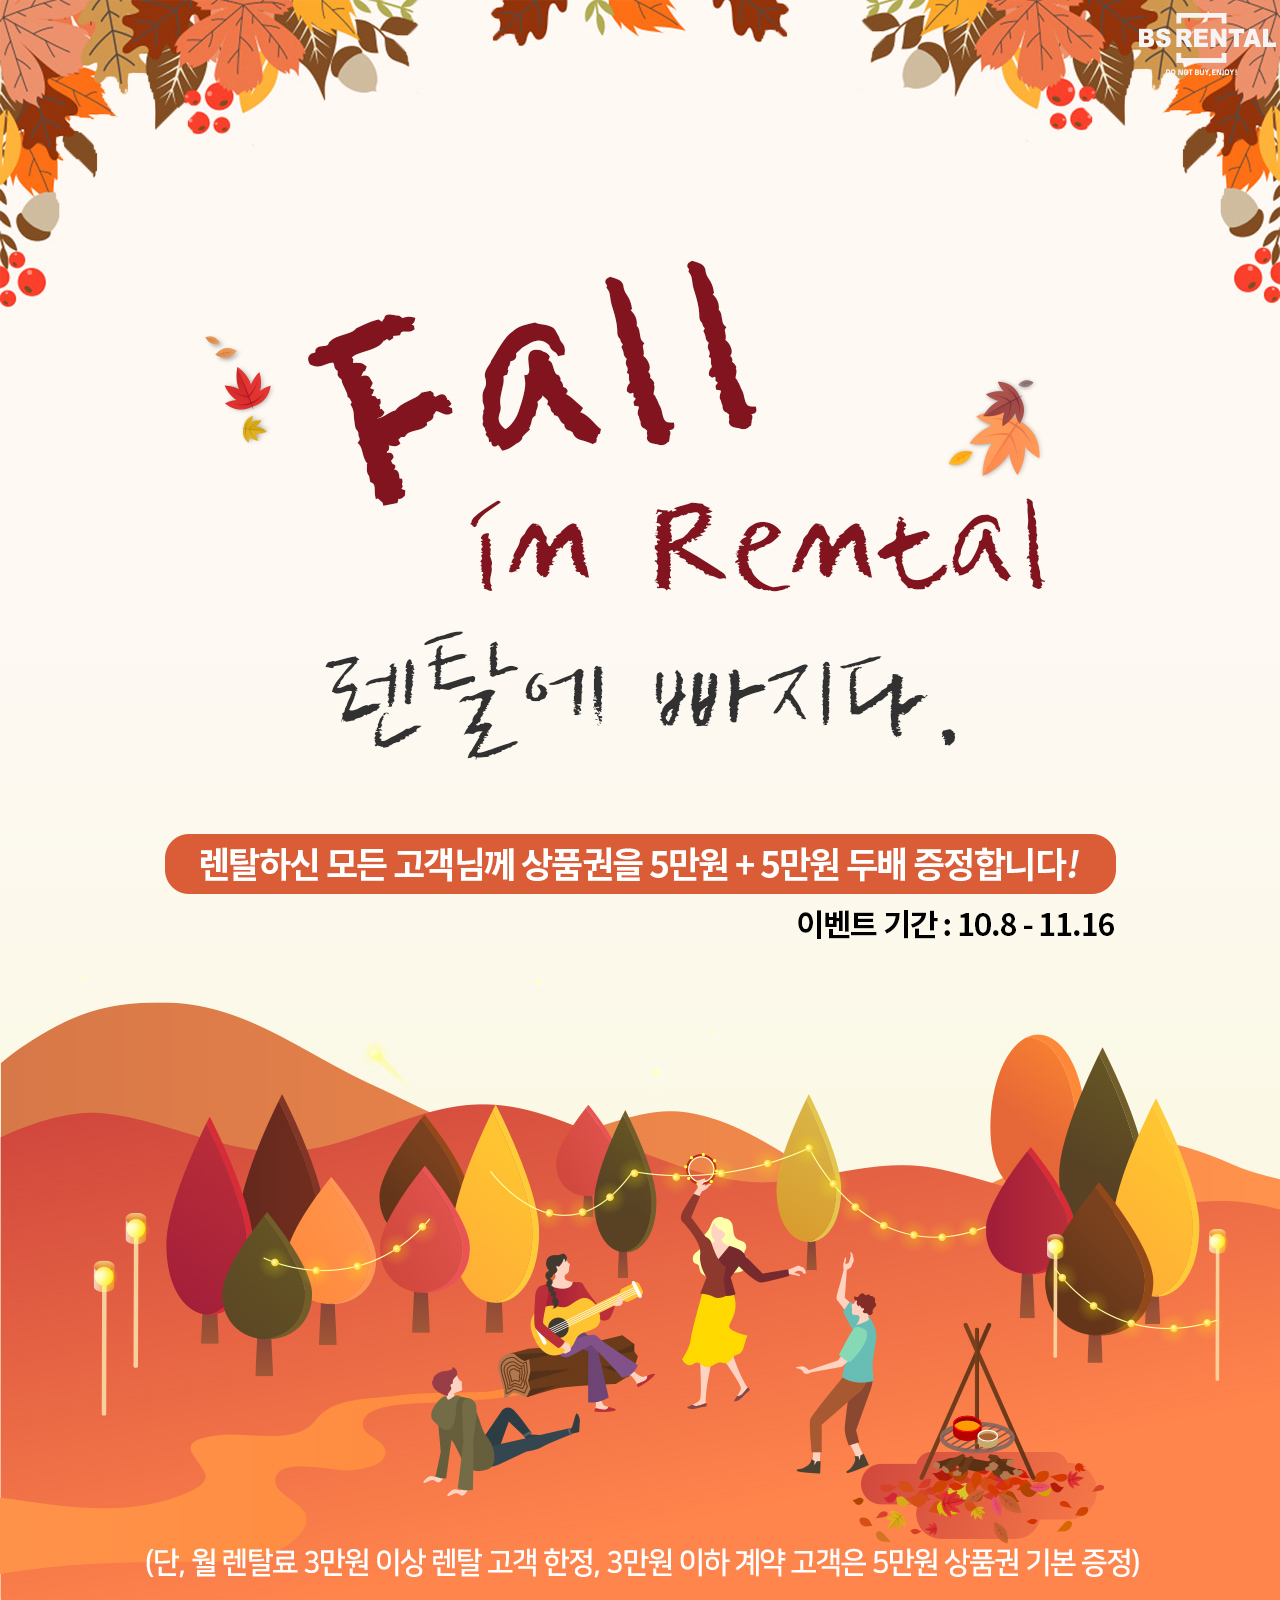 Fall in rental